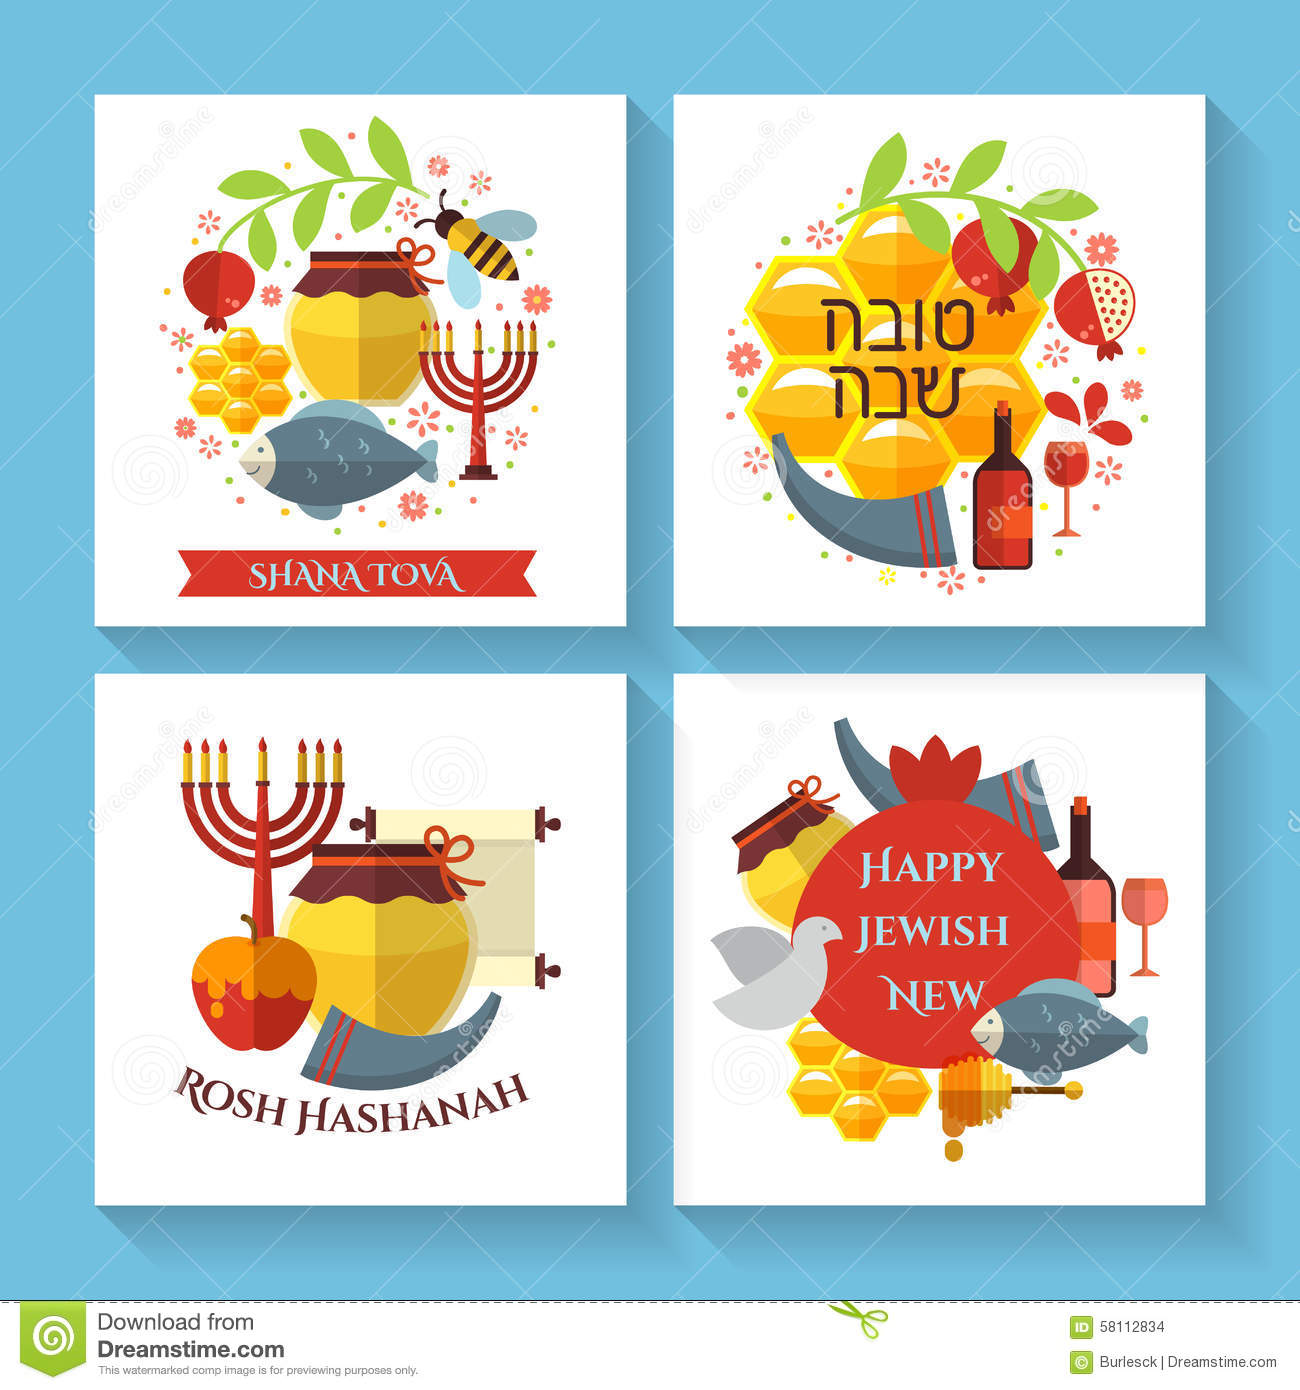 Happy jewish new year shana tova greeting cards stock vector happy jewish new year shana tova greeting cards kristyandbryce Choice Image